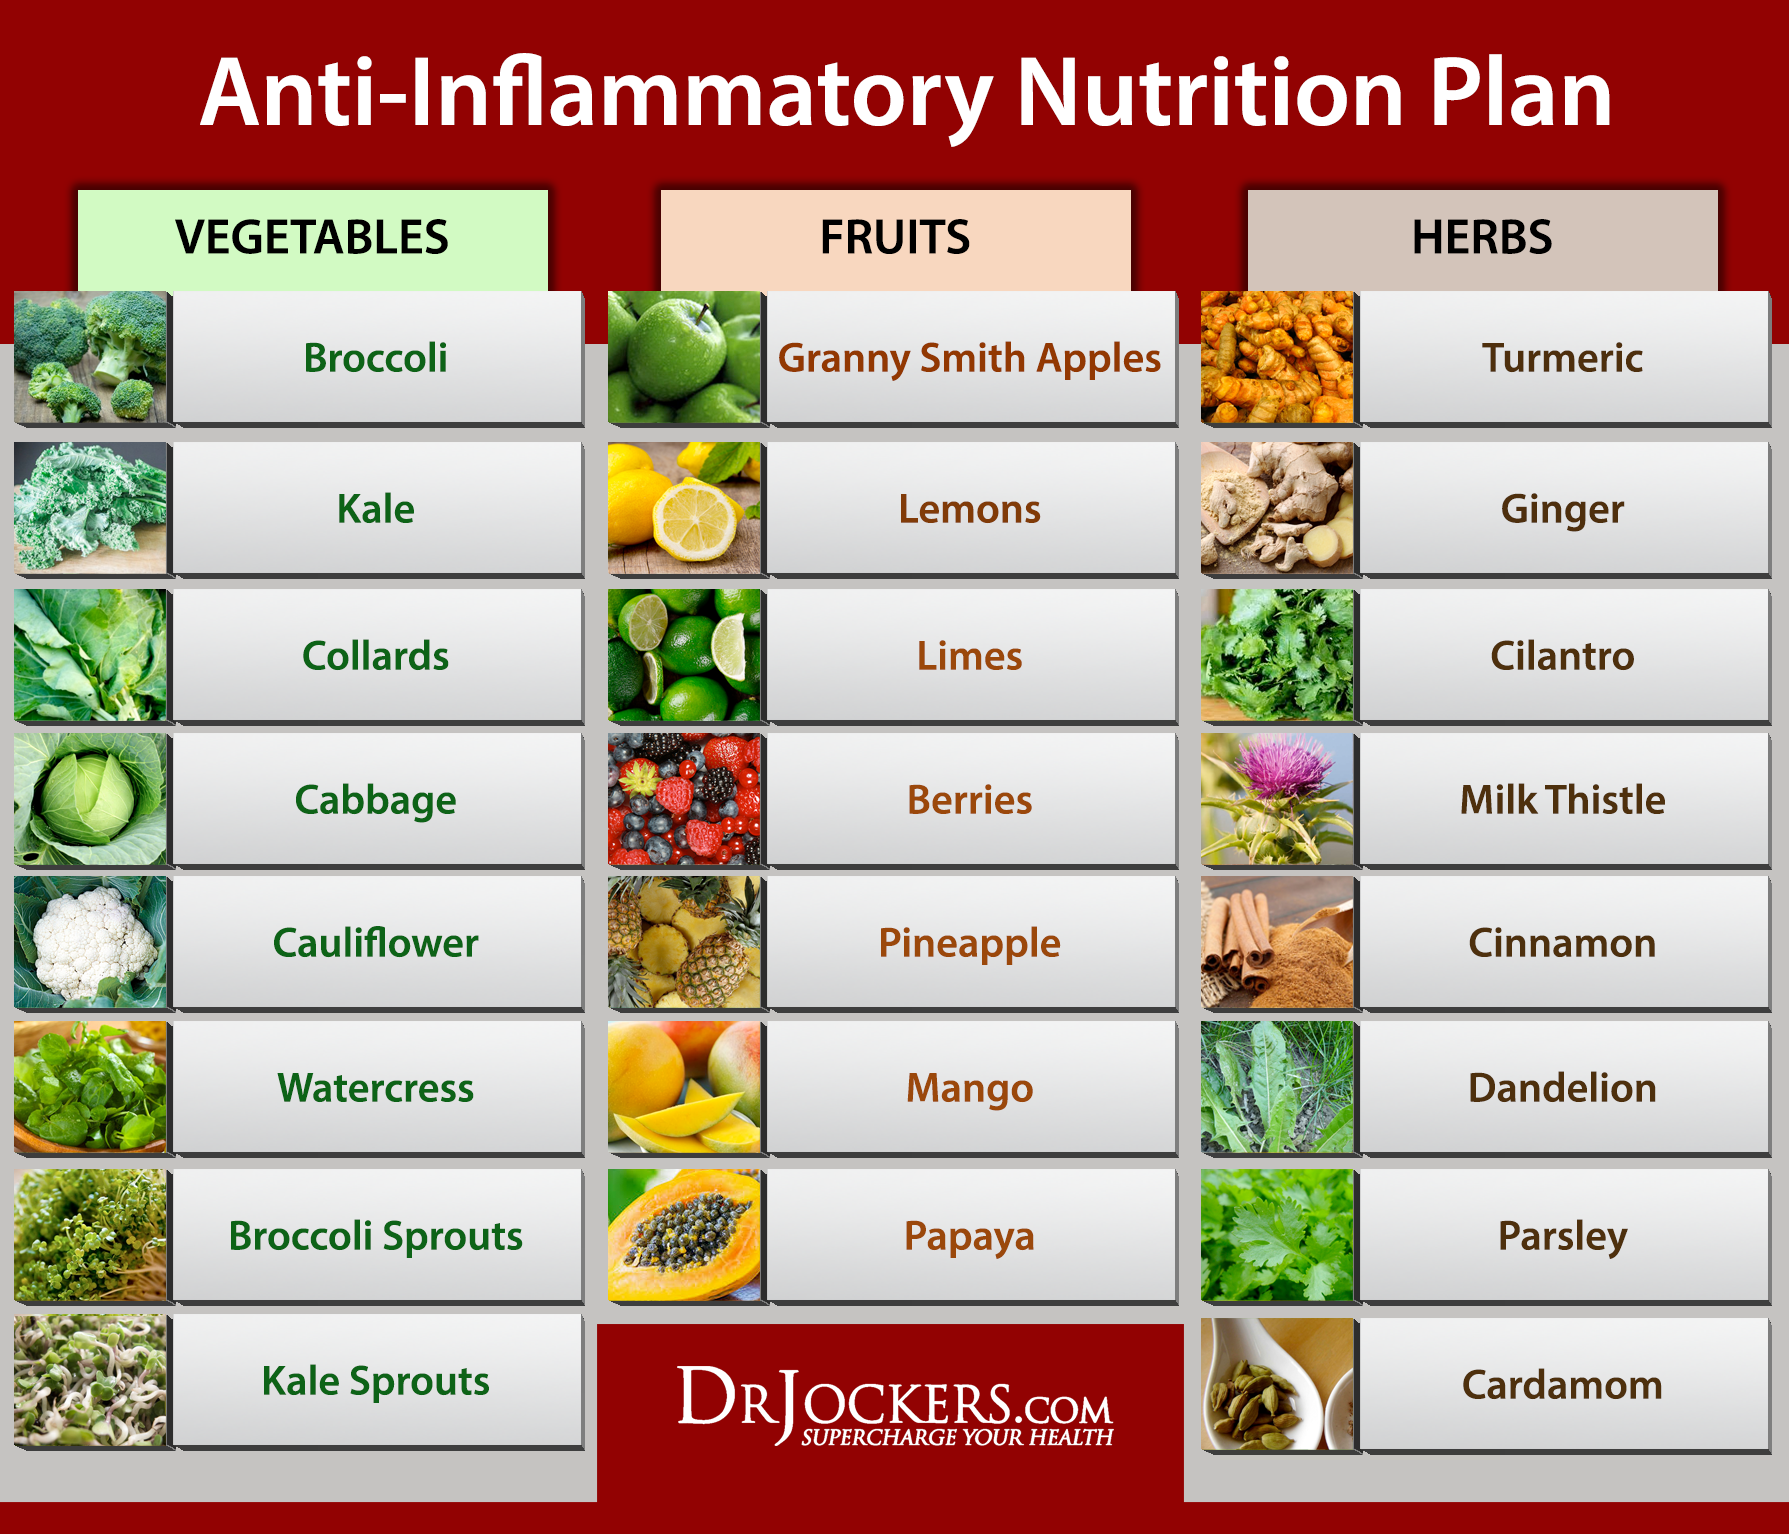 Pancreatitis Symptoms Causes And Natural Support Strategies In 2020 Coconut Health Benefits Tomato Nutrition Anti Inflammatory Diet Meal Plan